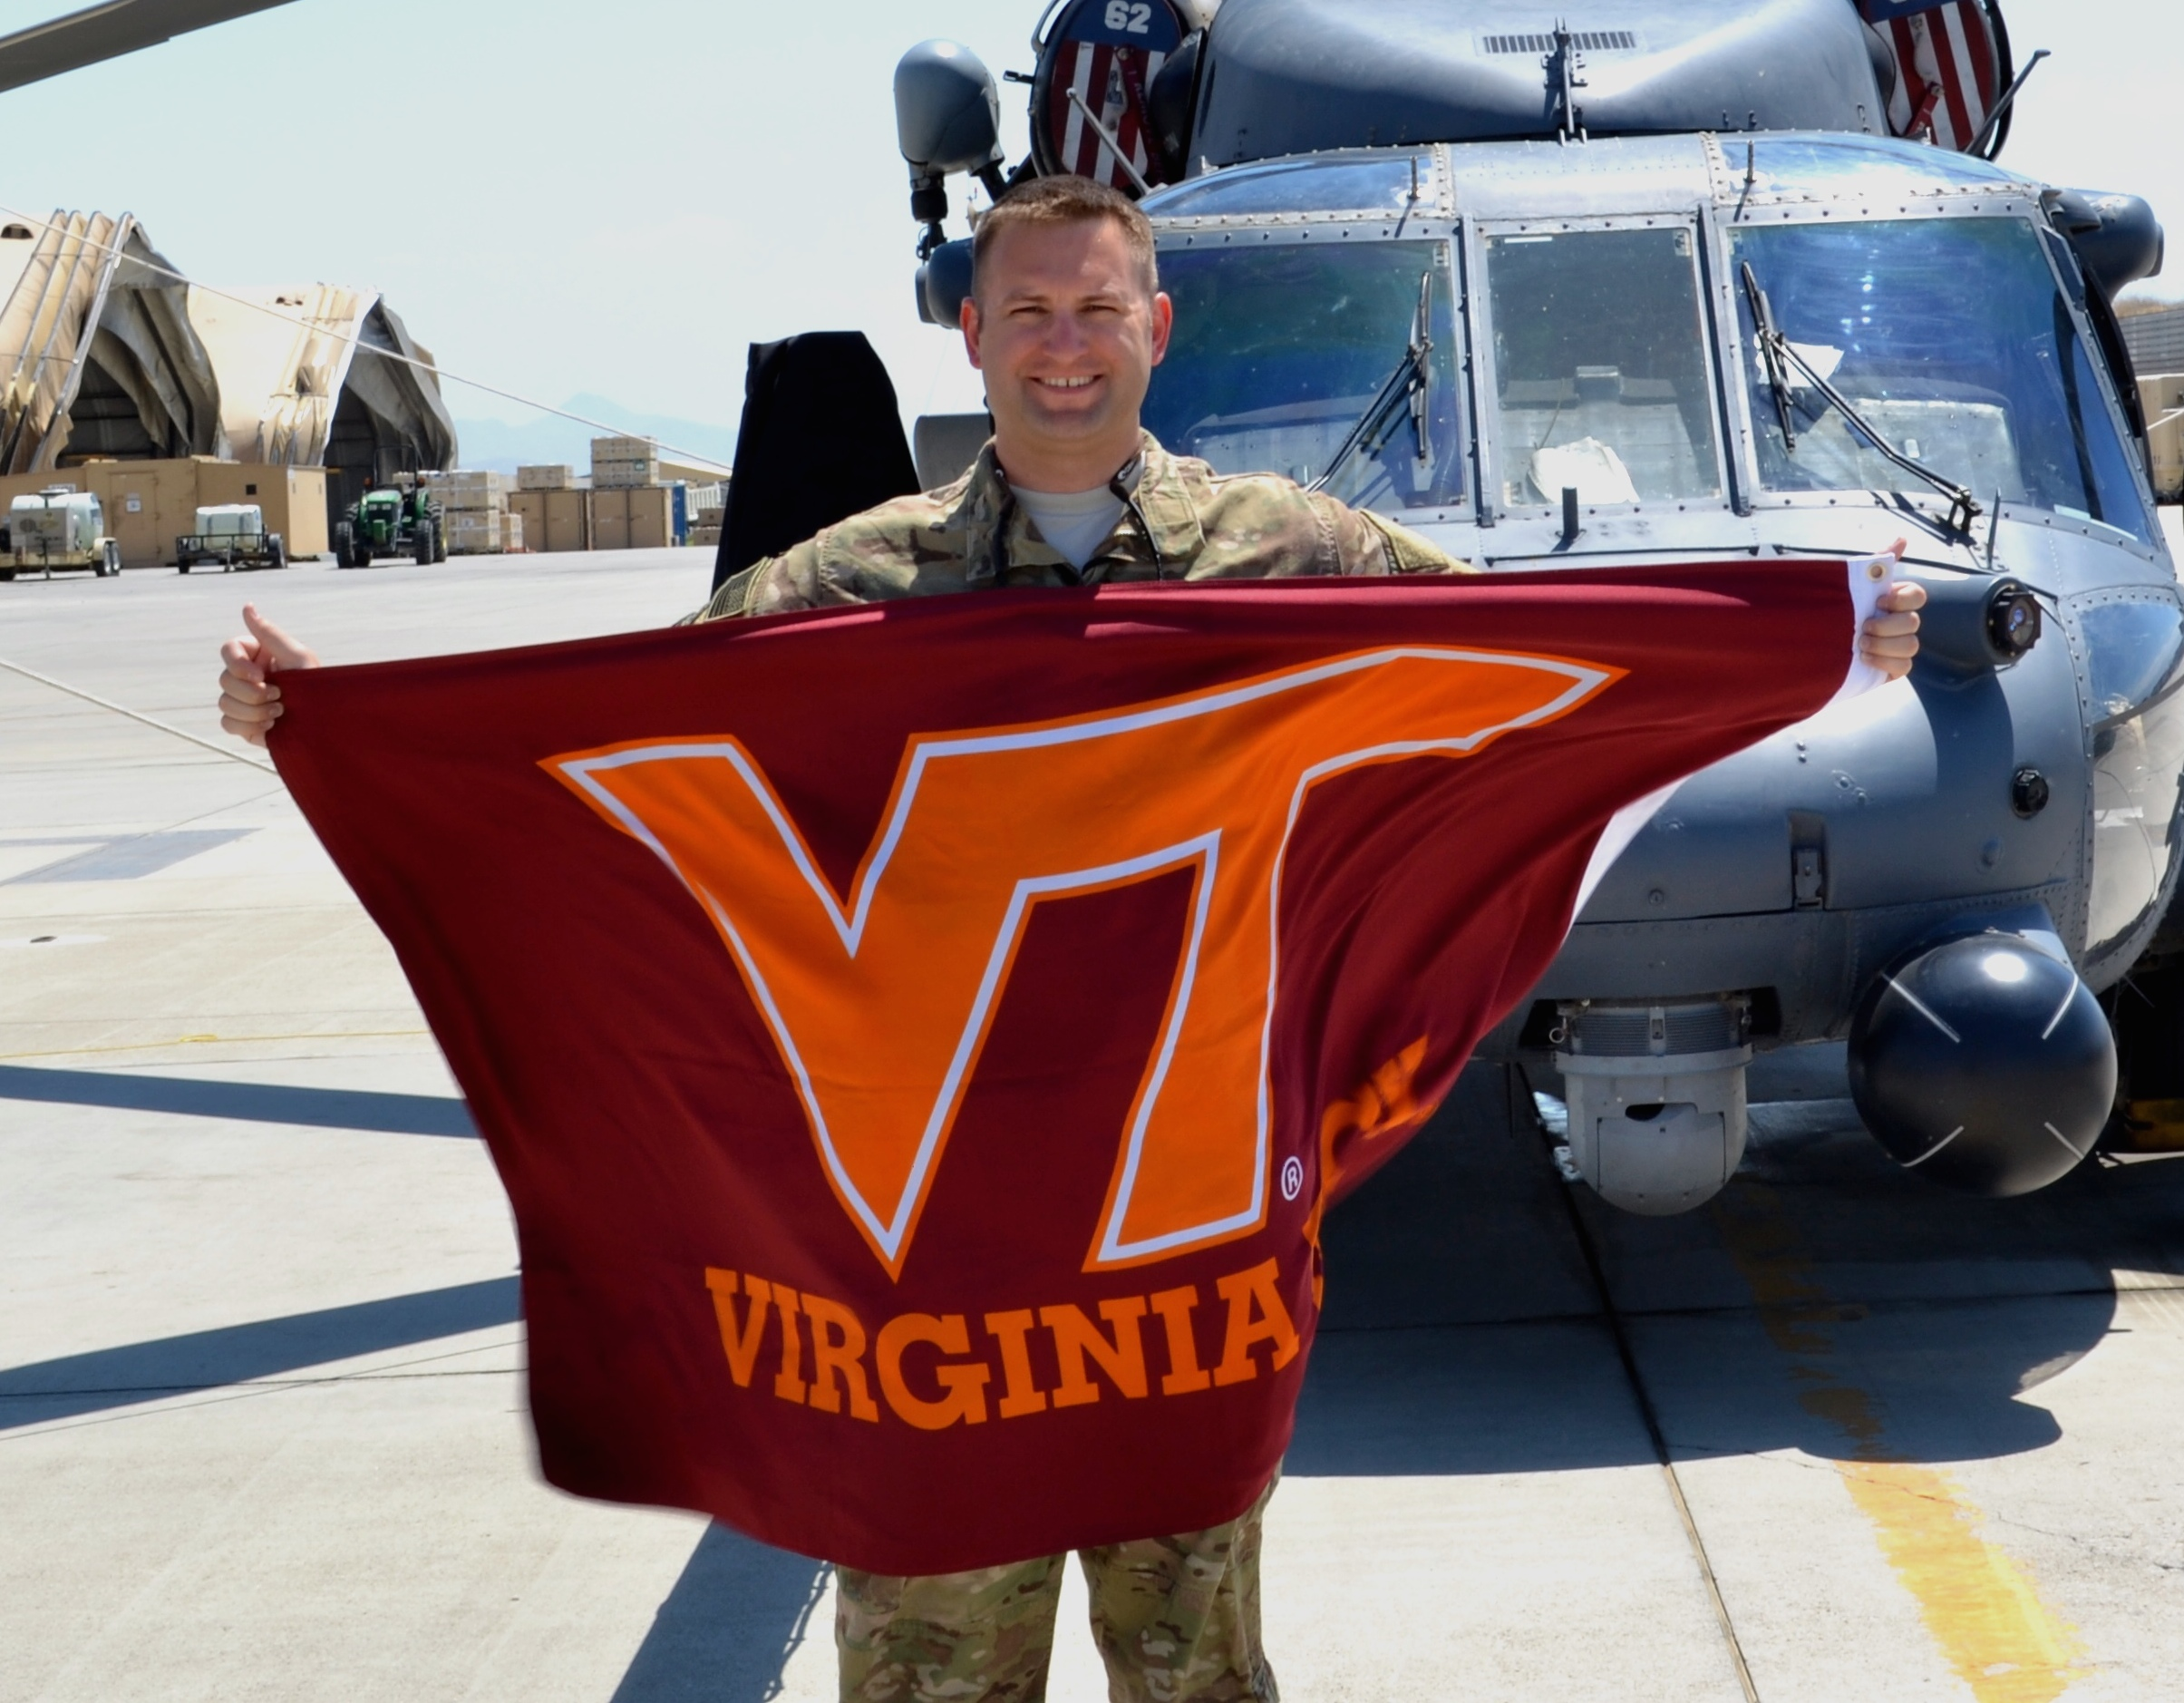 Capt. Chris Horsfall, U.S. Air Force, Virginia Tech Corps of Cadets Class of 2006 in Afghanistan.